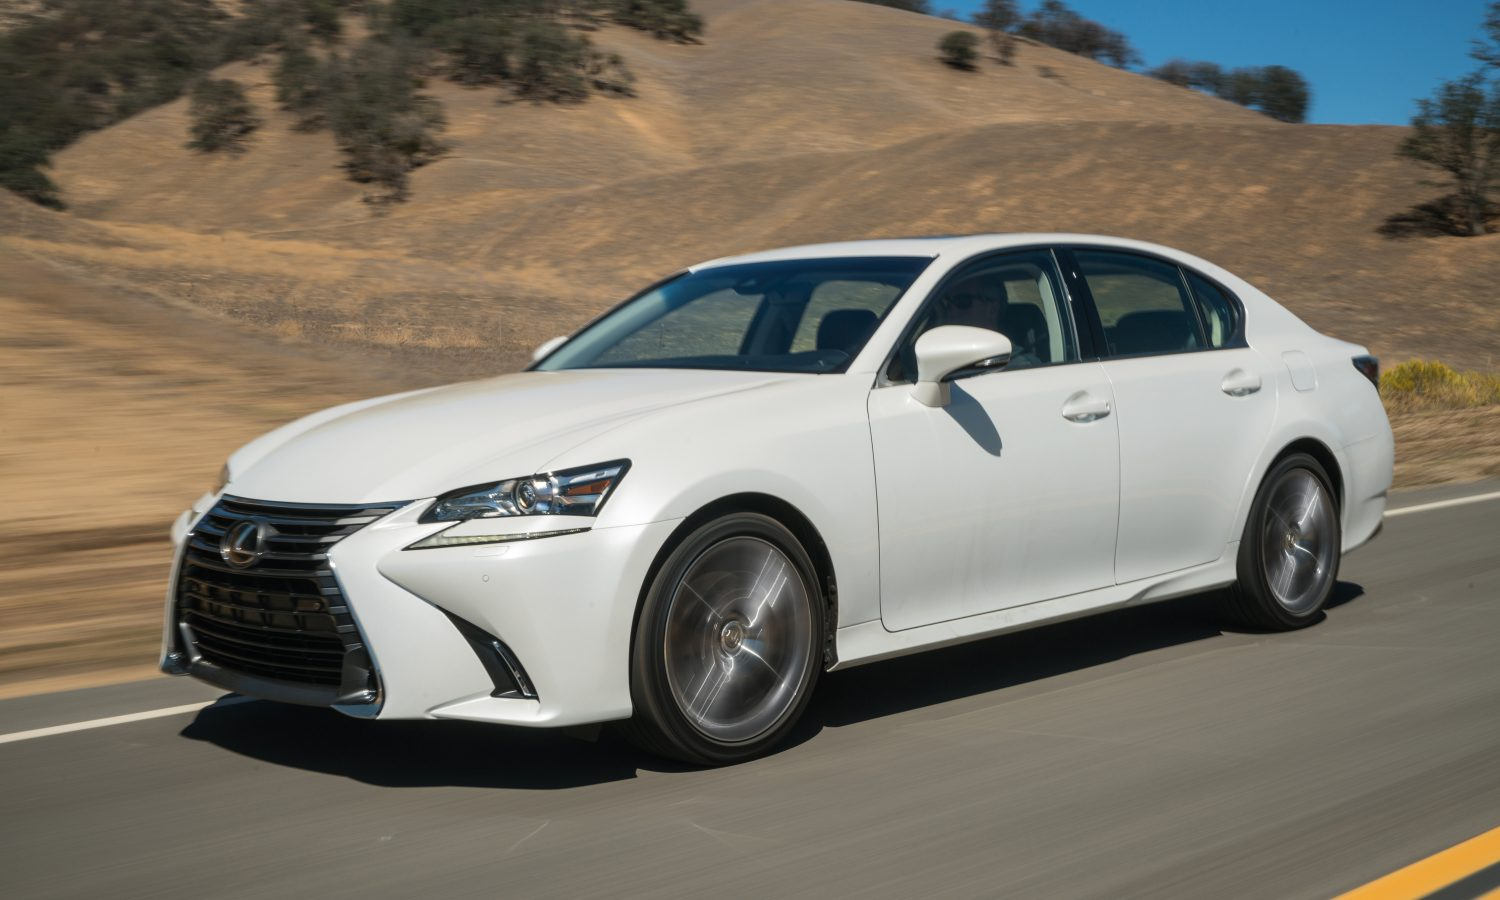 2016 Lexus GS 200t / GS 350 Product Information